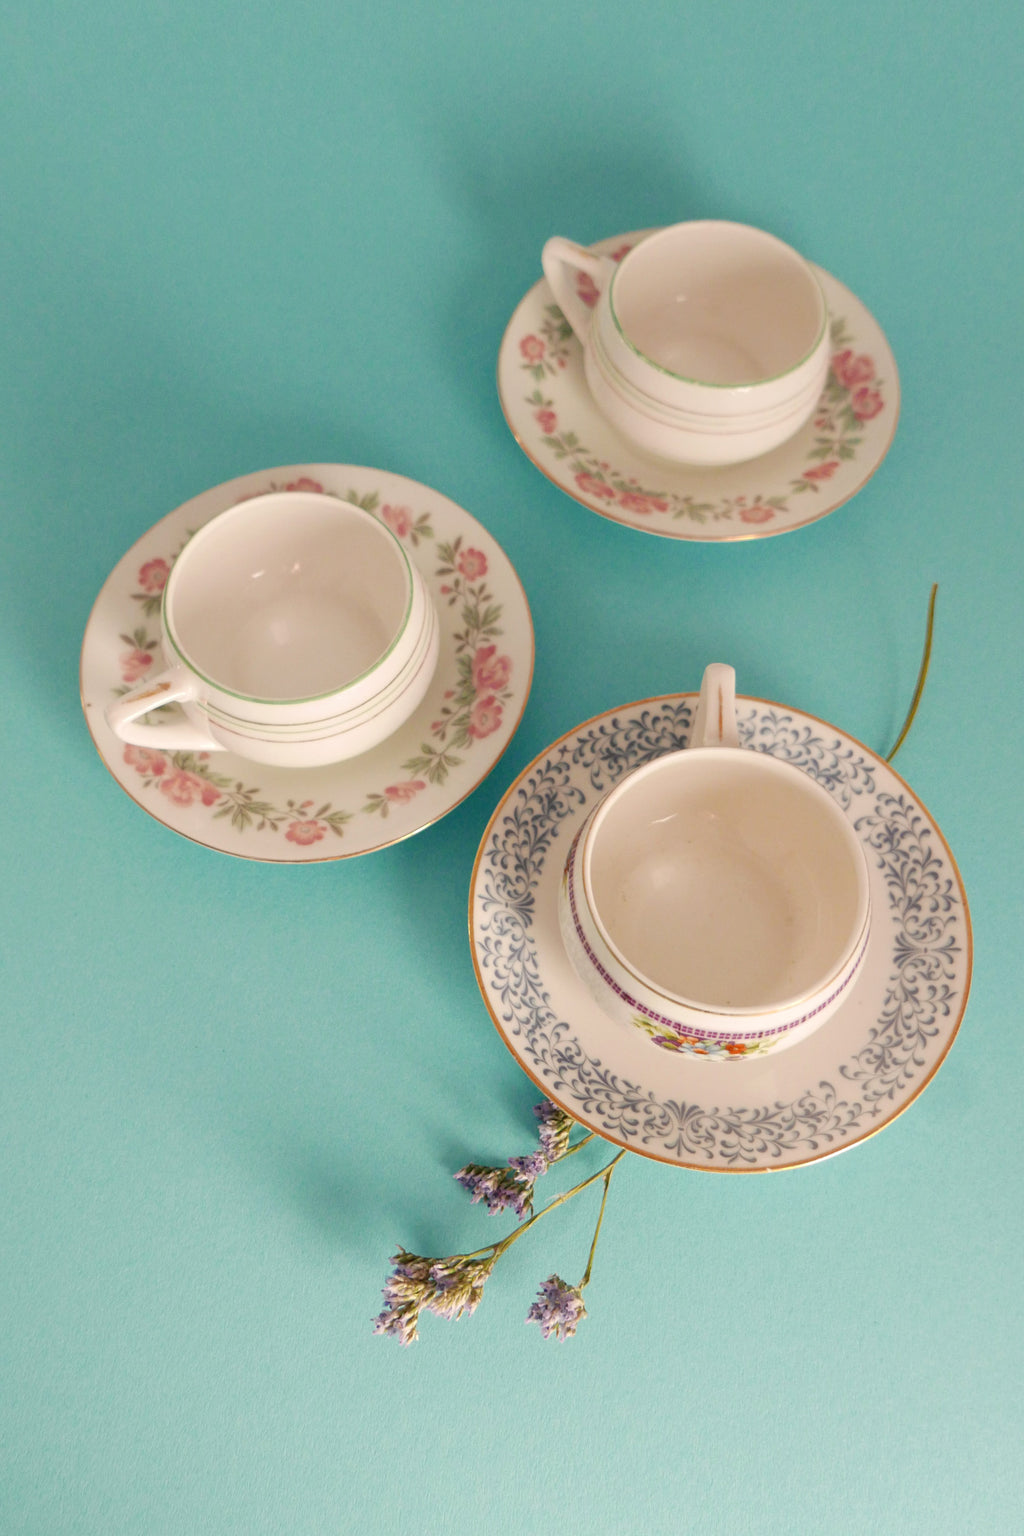 Vintage Tea Cups & Saucers Set - Mix Of Victorian Floral Pattern